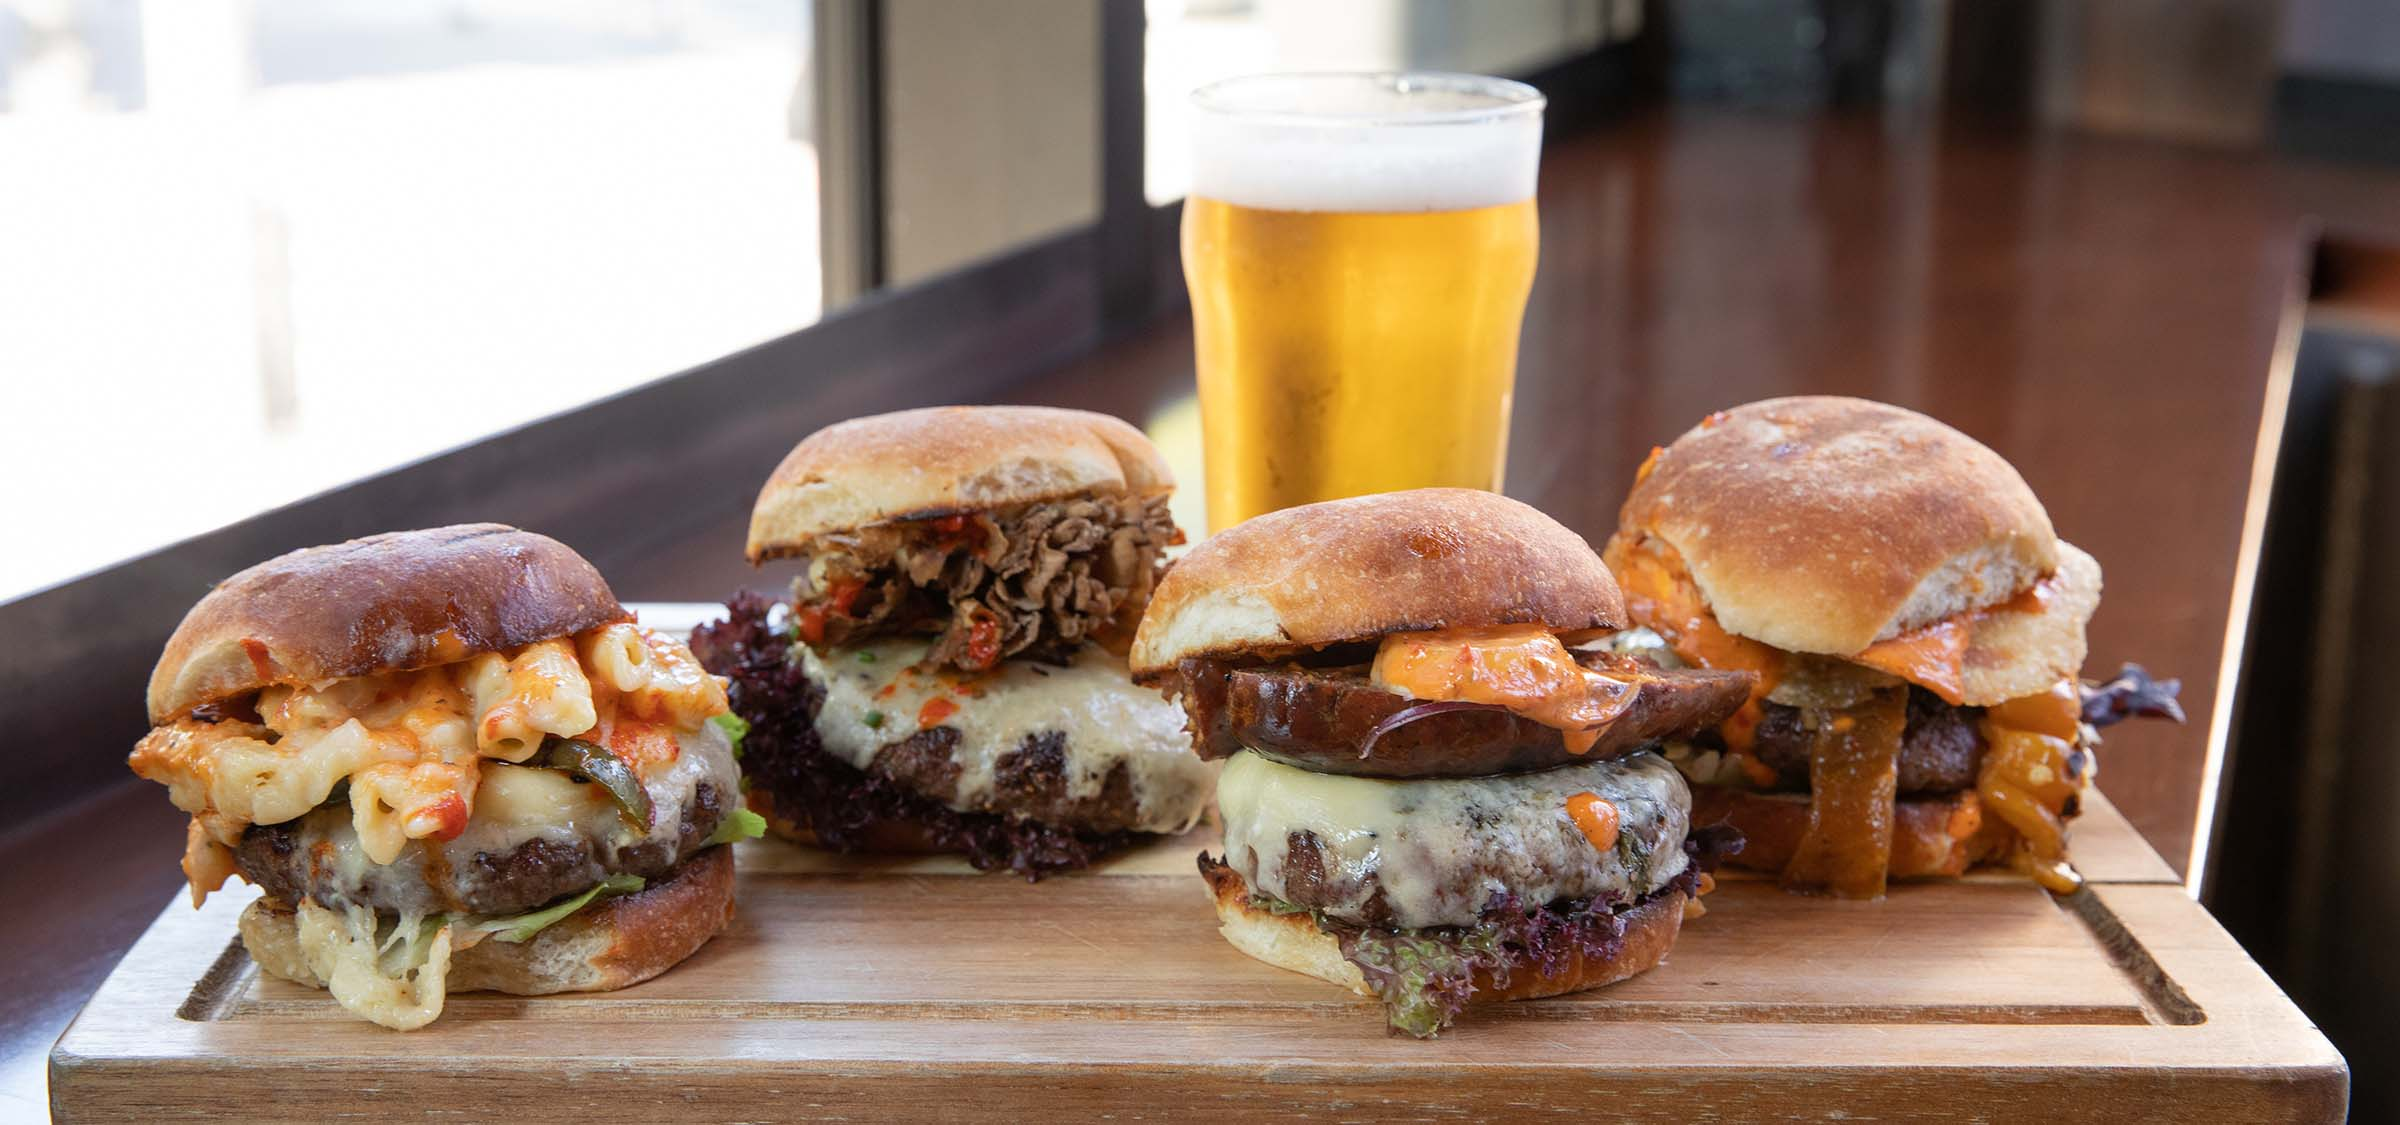 Wooden tray with four gourmet burgers and a beer in the background.